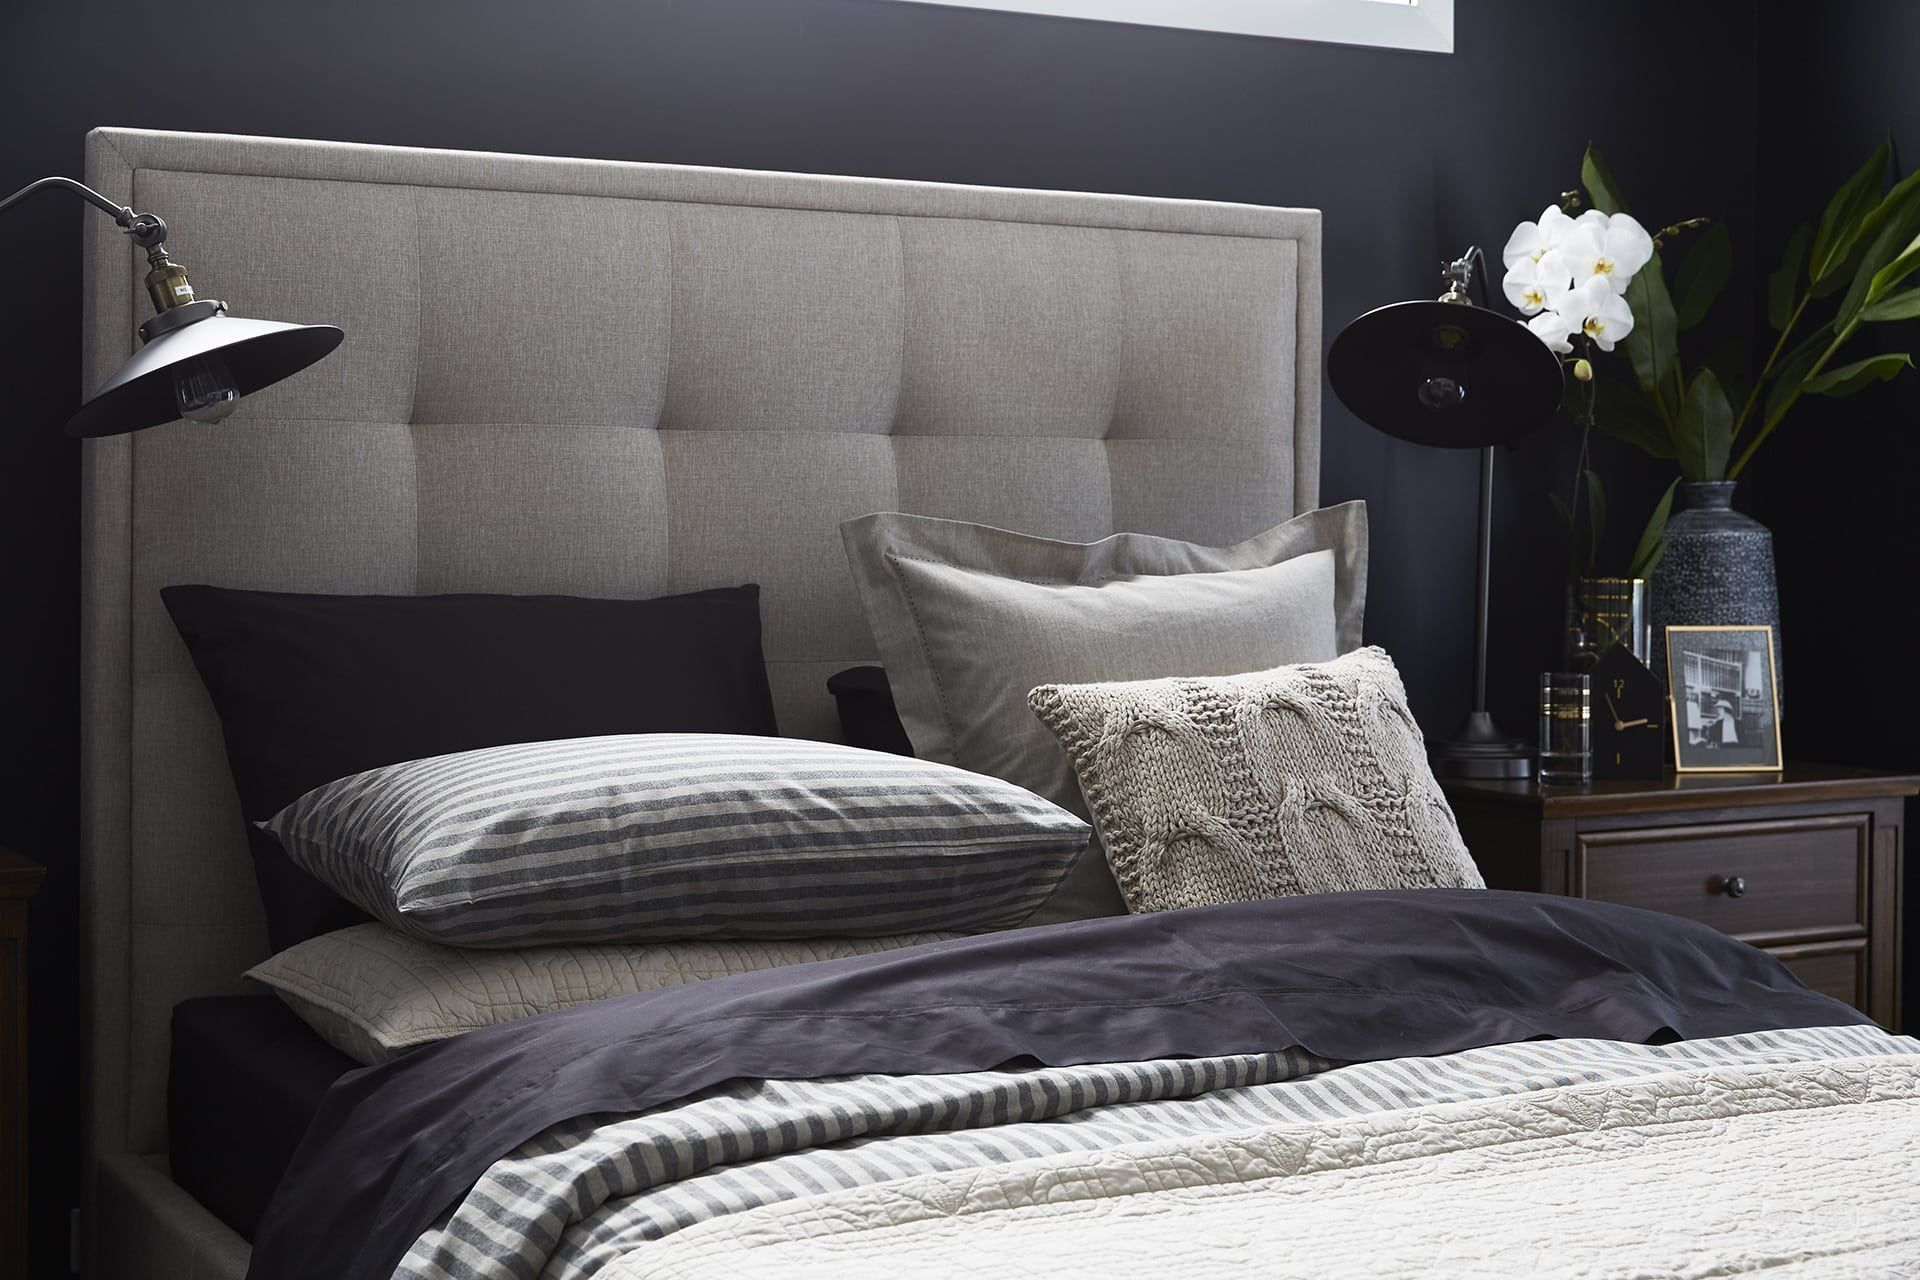 How to make your bedroom feel sophisticated Gray